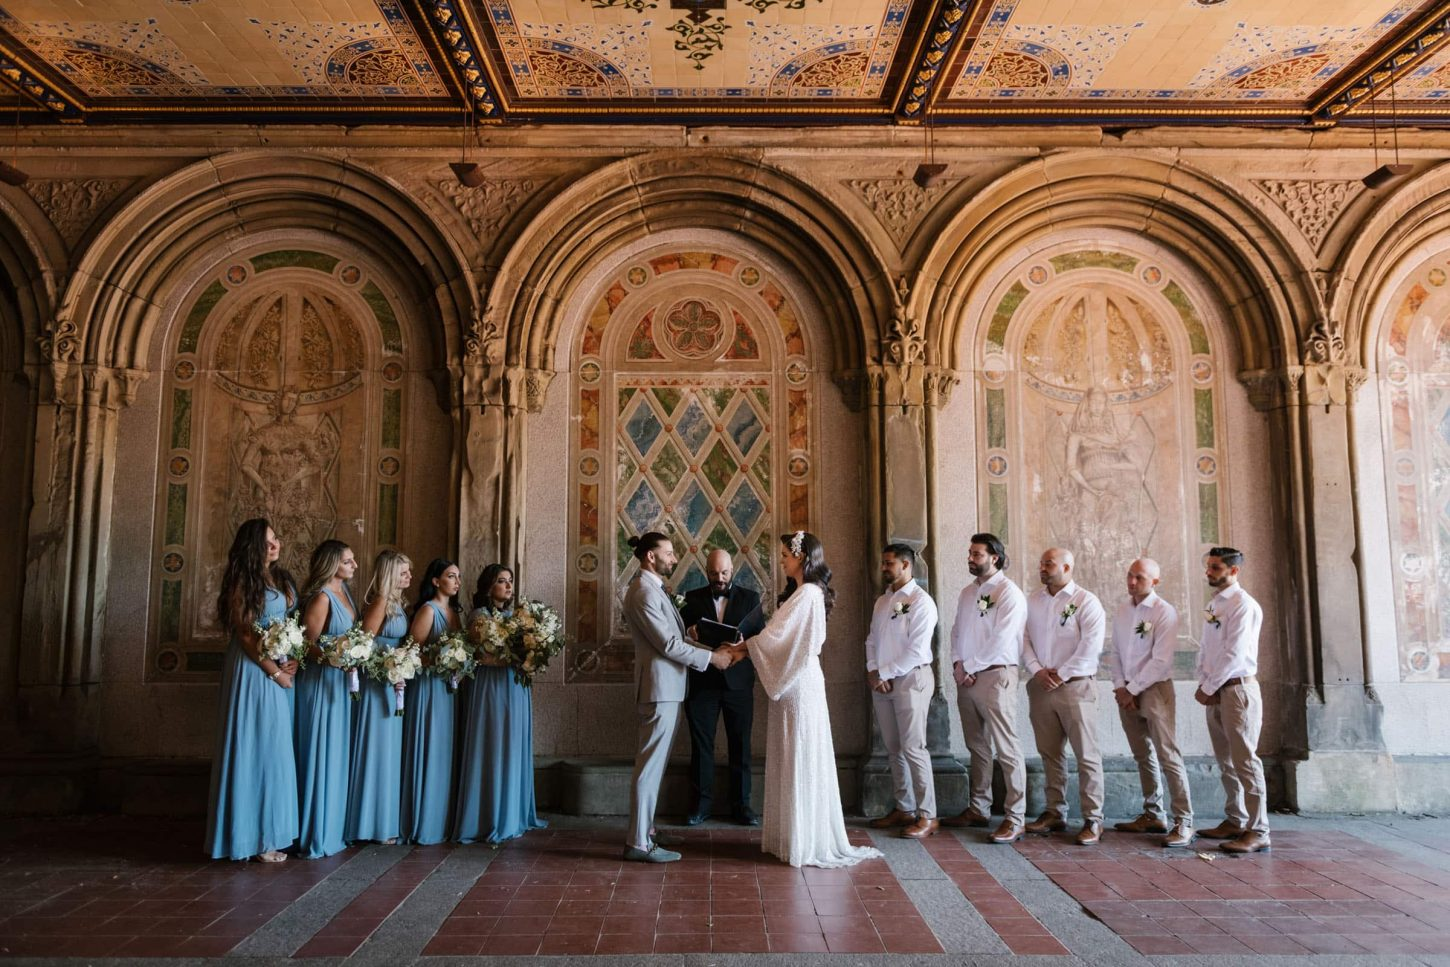 Bethesda Terrace wedding at Central Park NYC